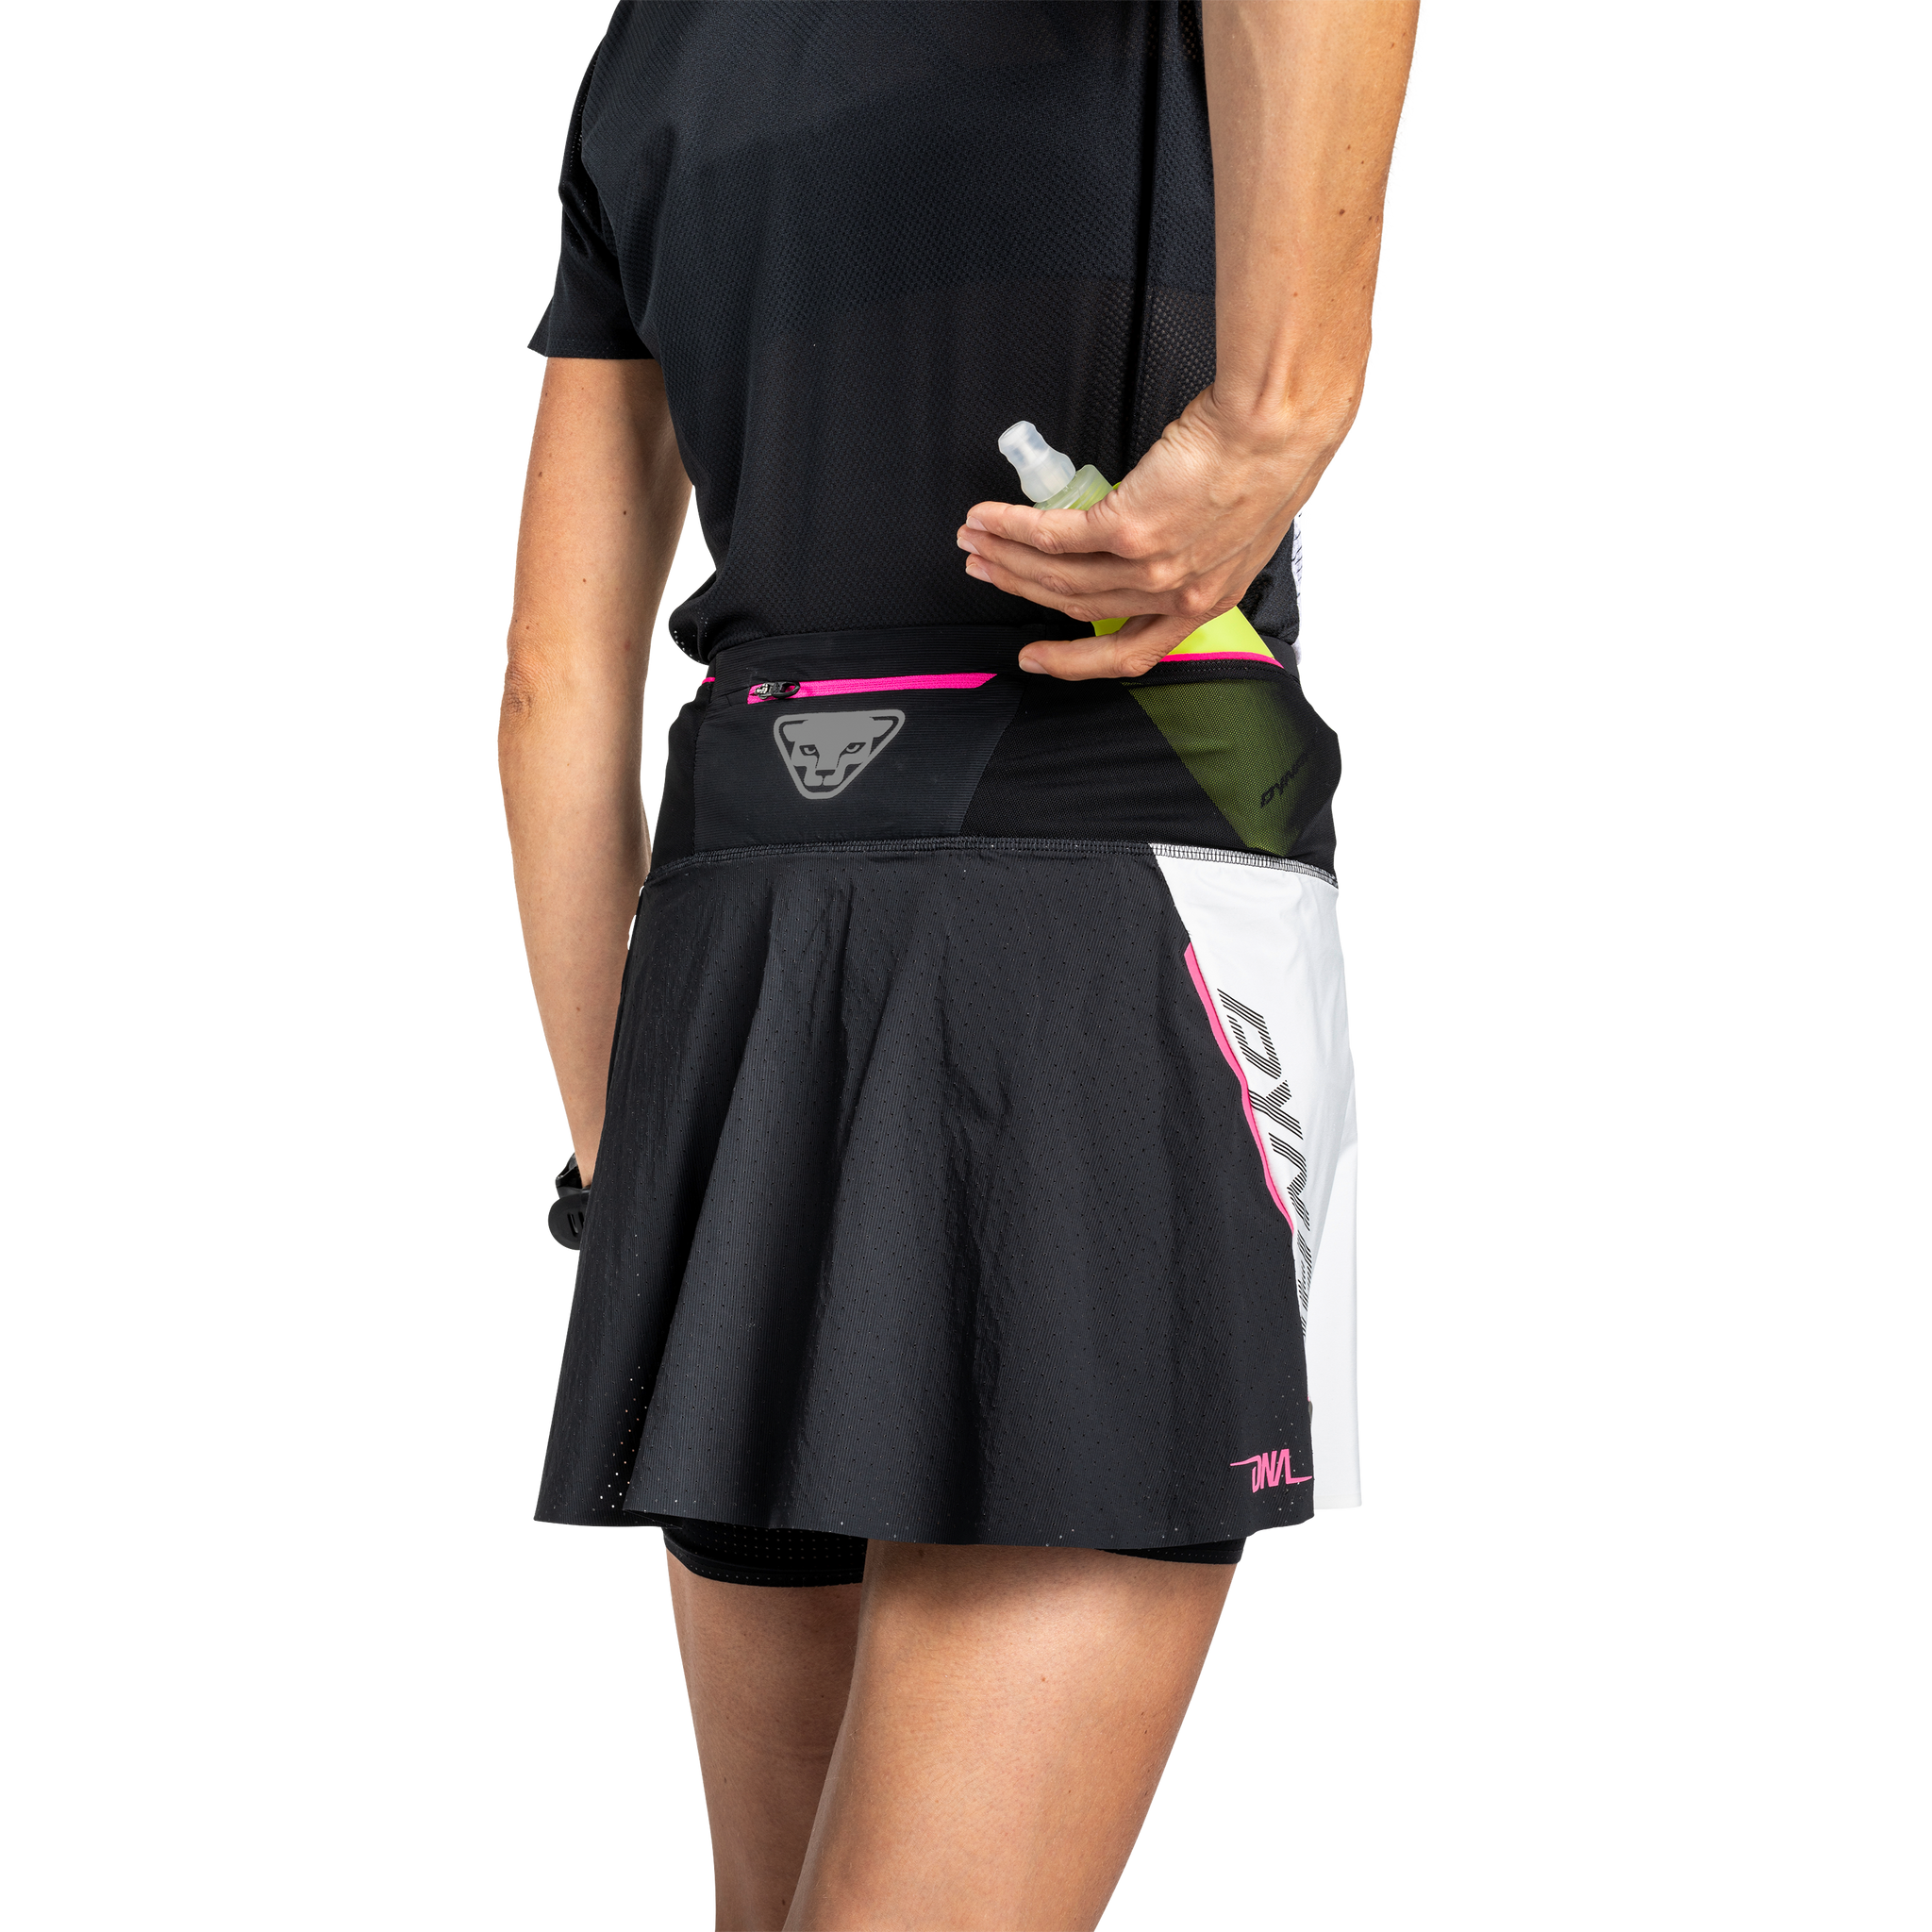 DNA Ultra W 2/1 Skirt